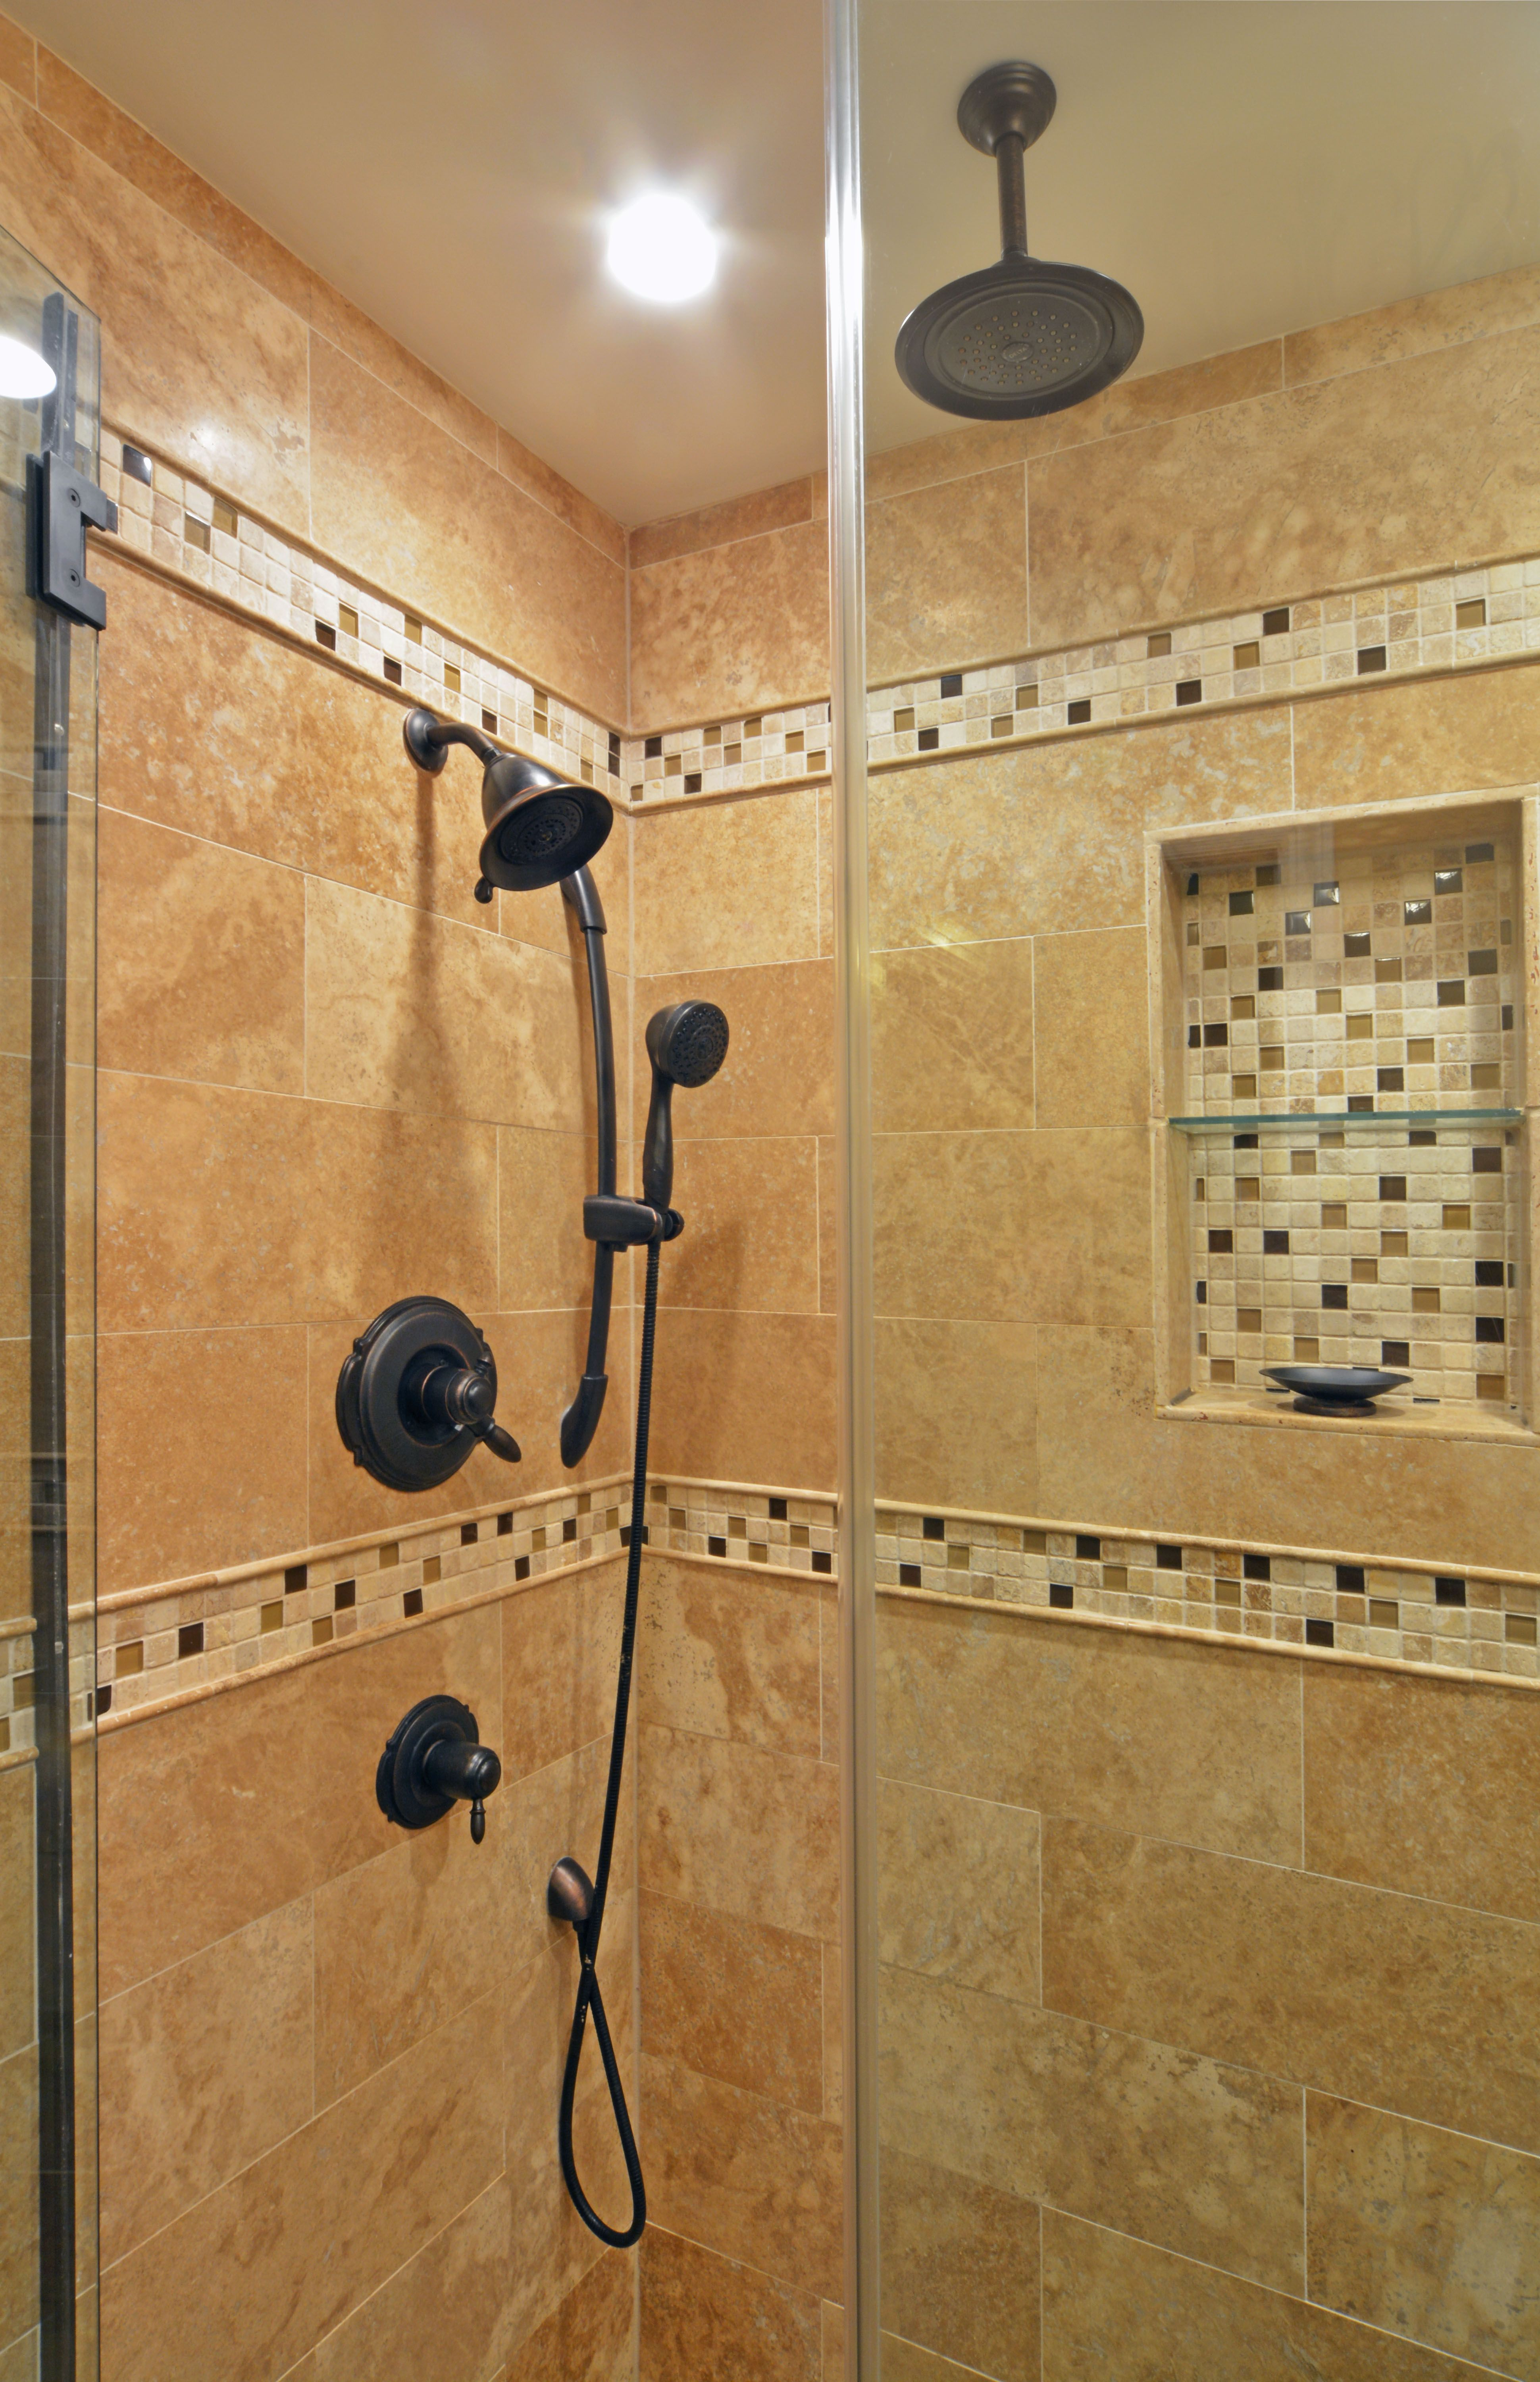 Travertine Tile Shower Stall With Set In Shampoo Box